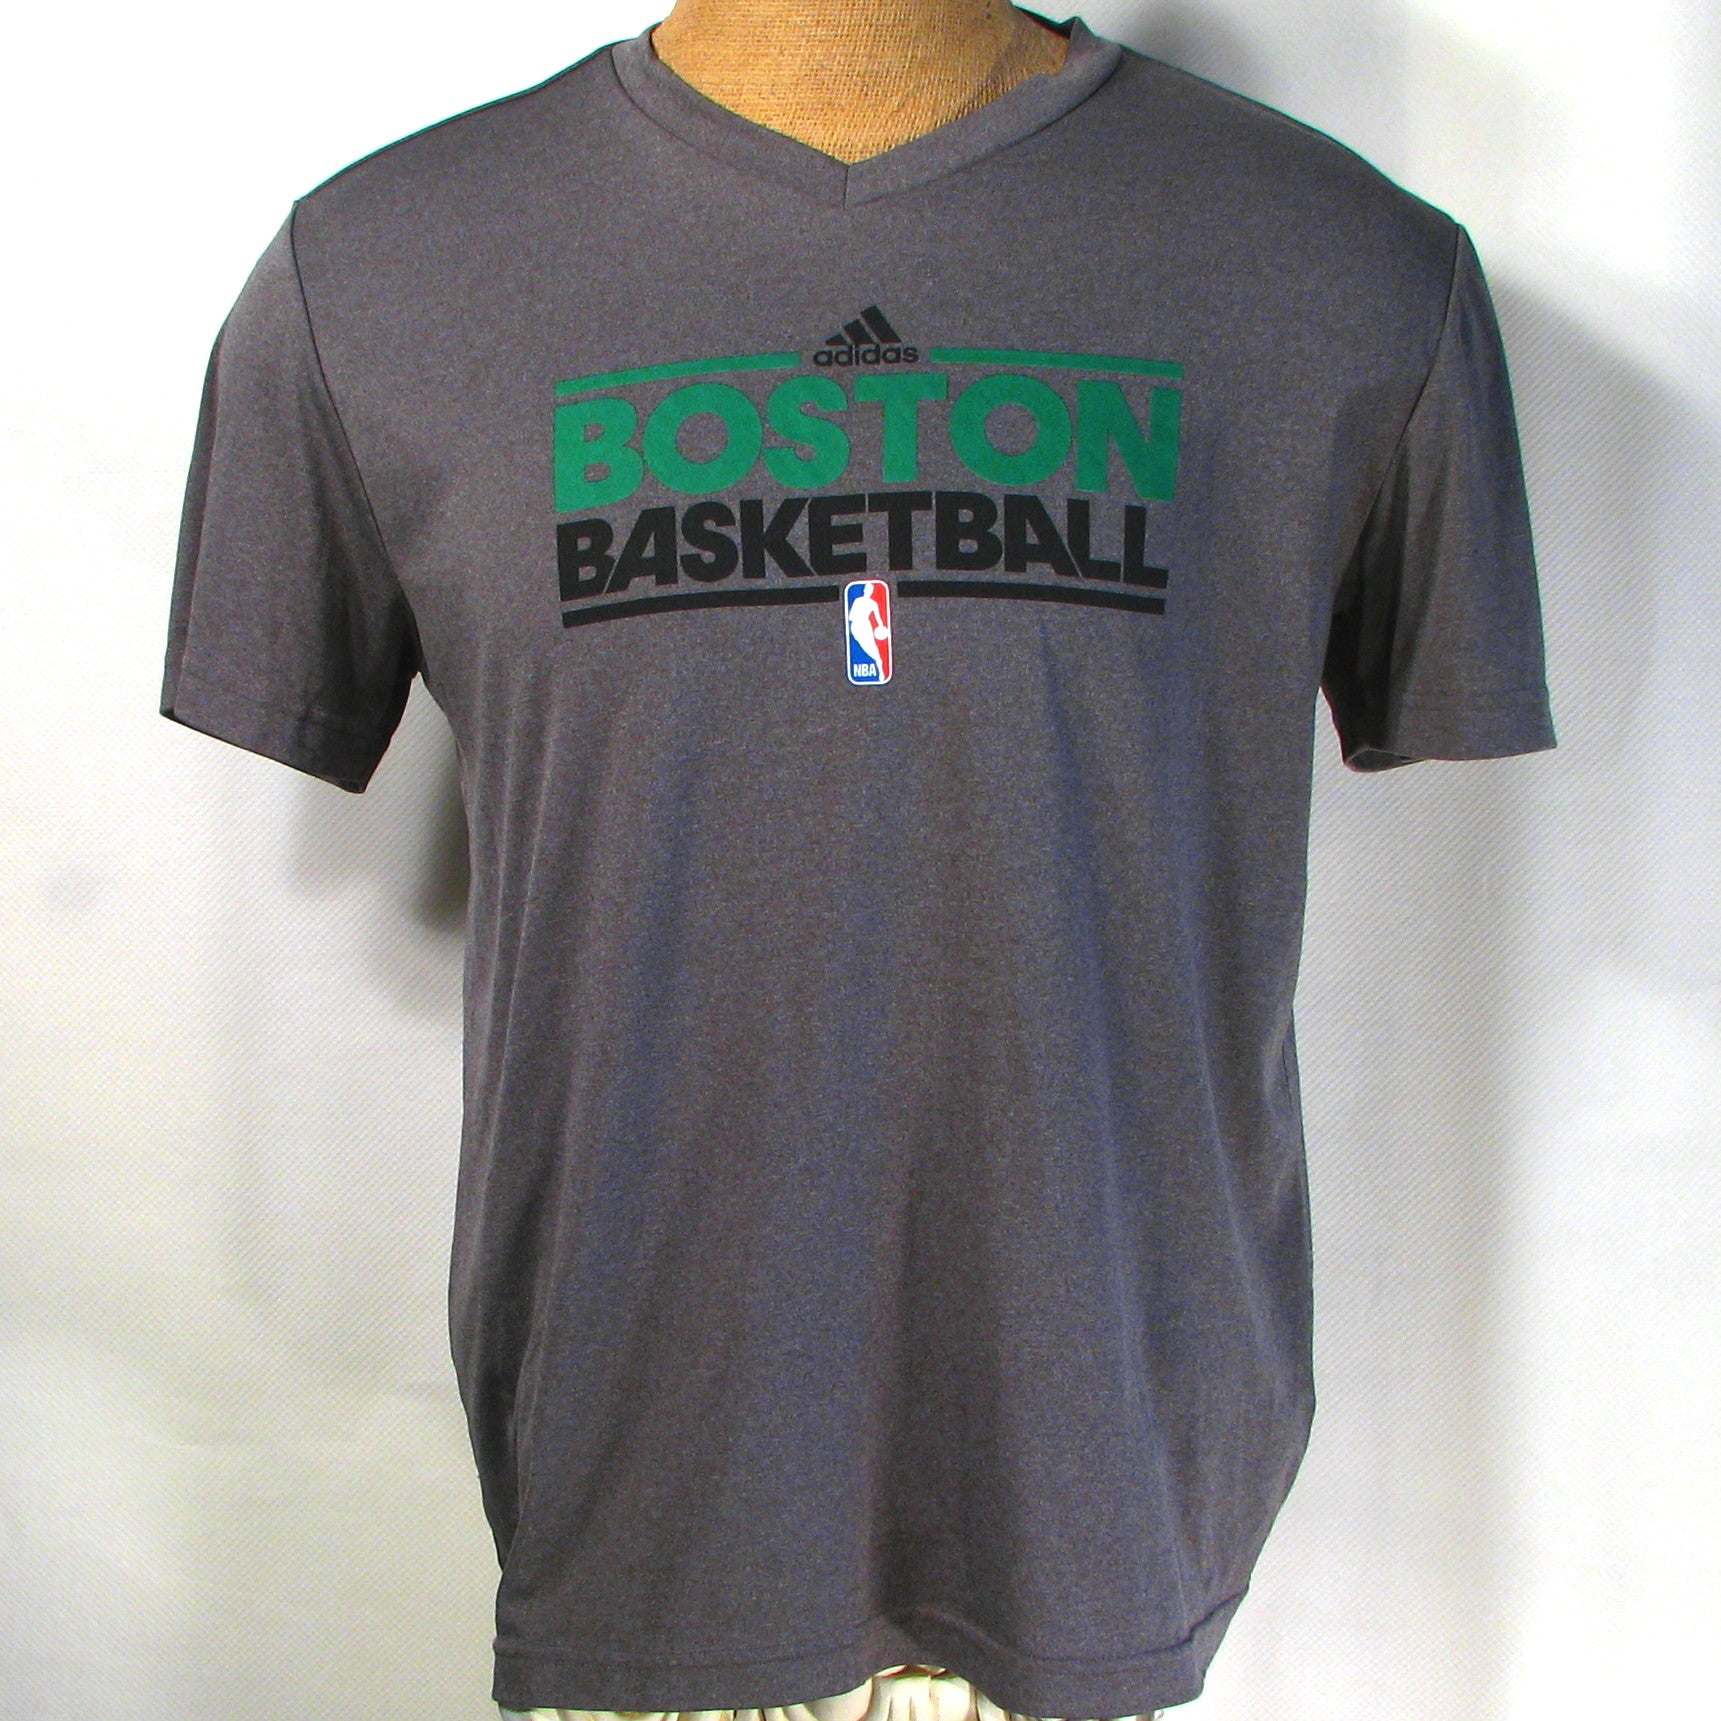 Boston Basketball T-Shirt